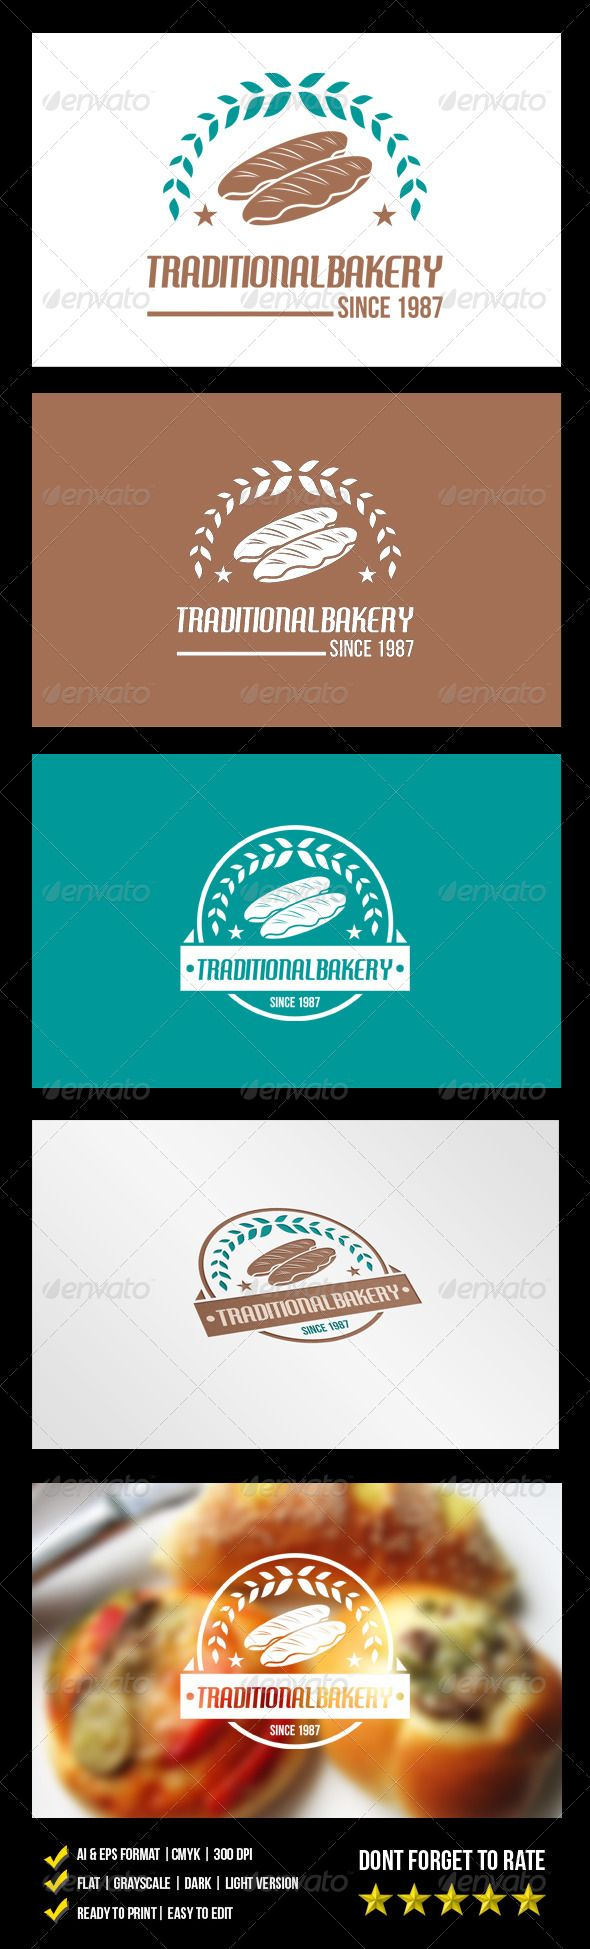 Traditional Bakery Logo - graphicriver sale